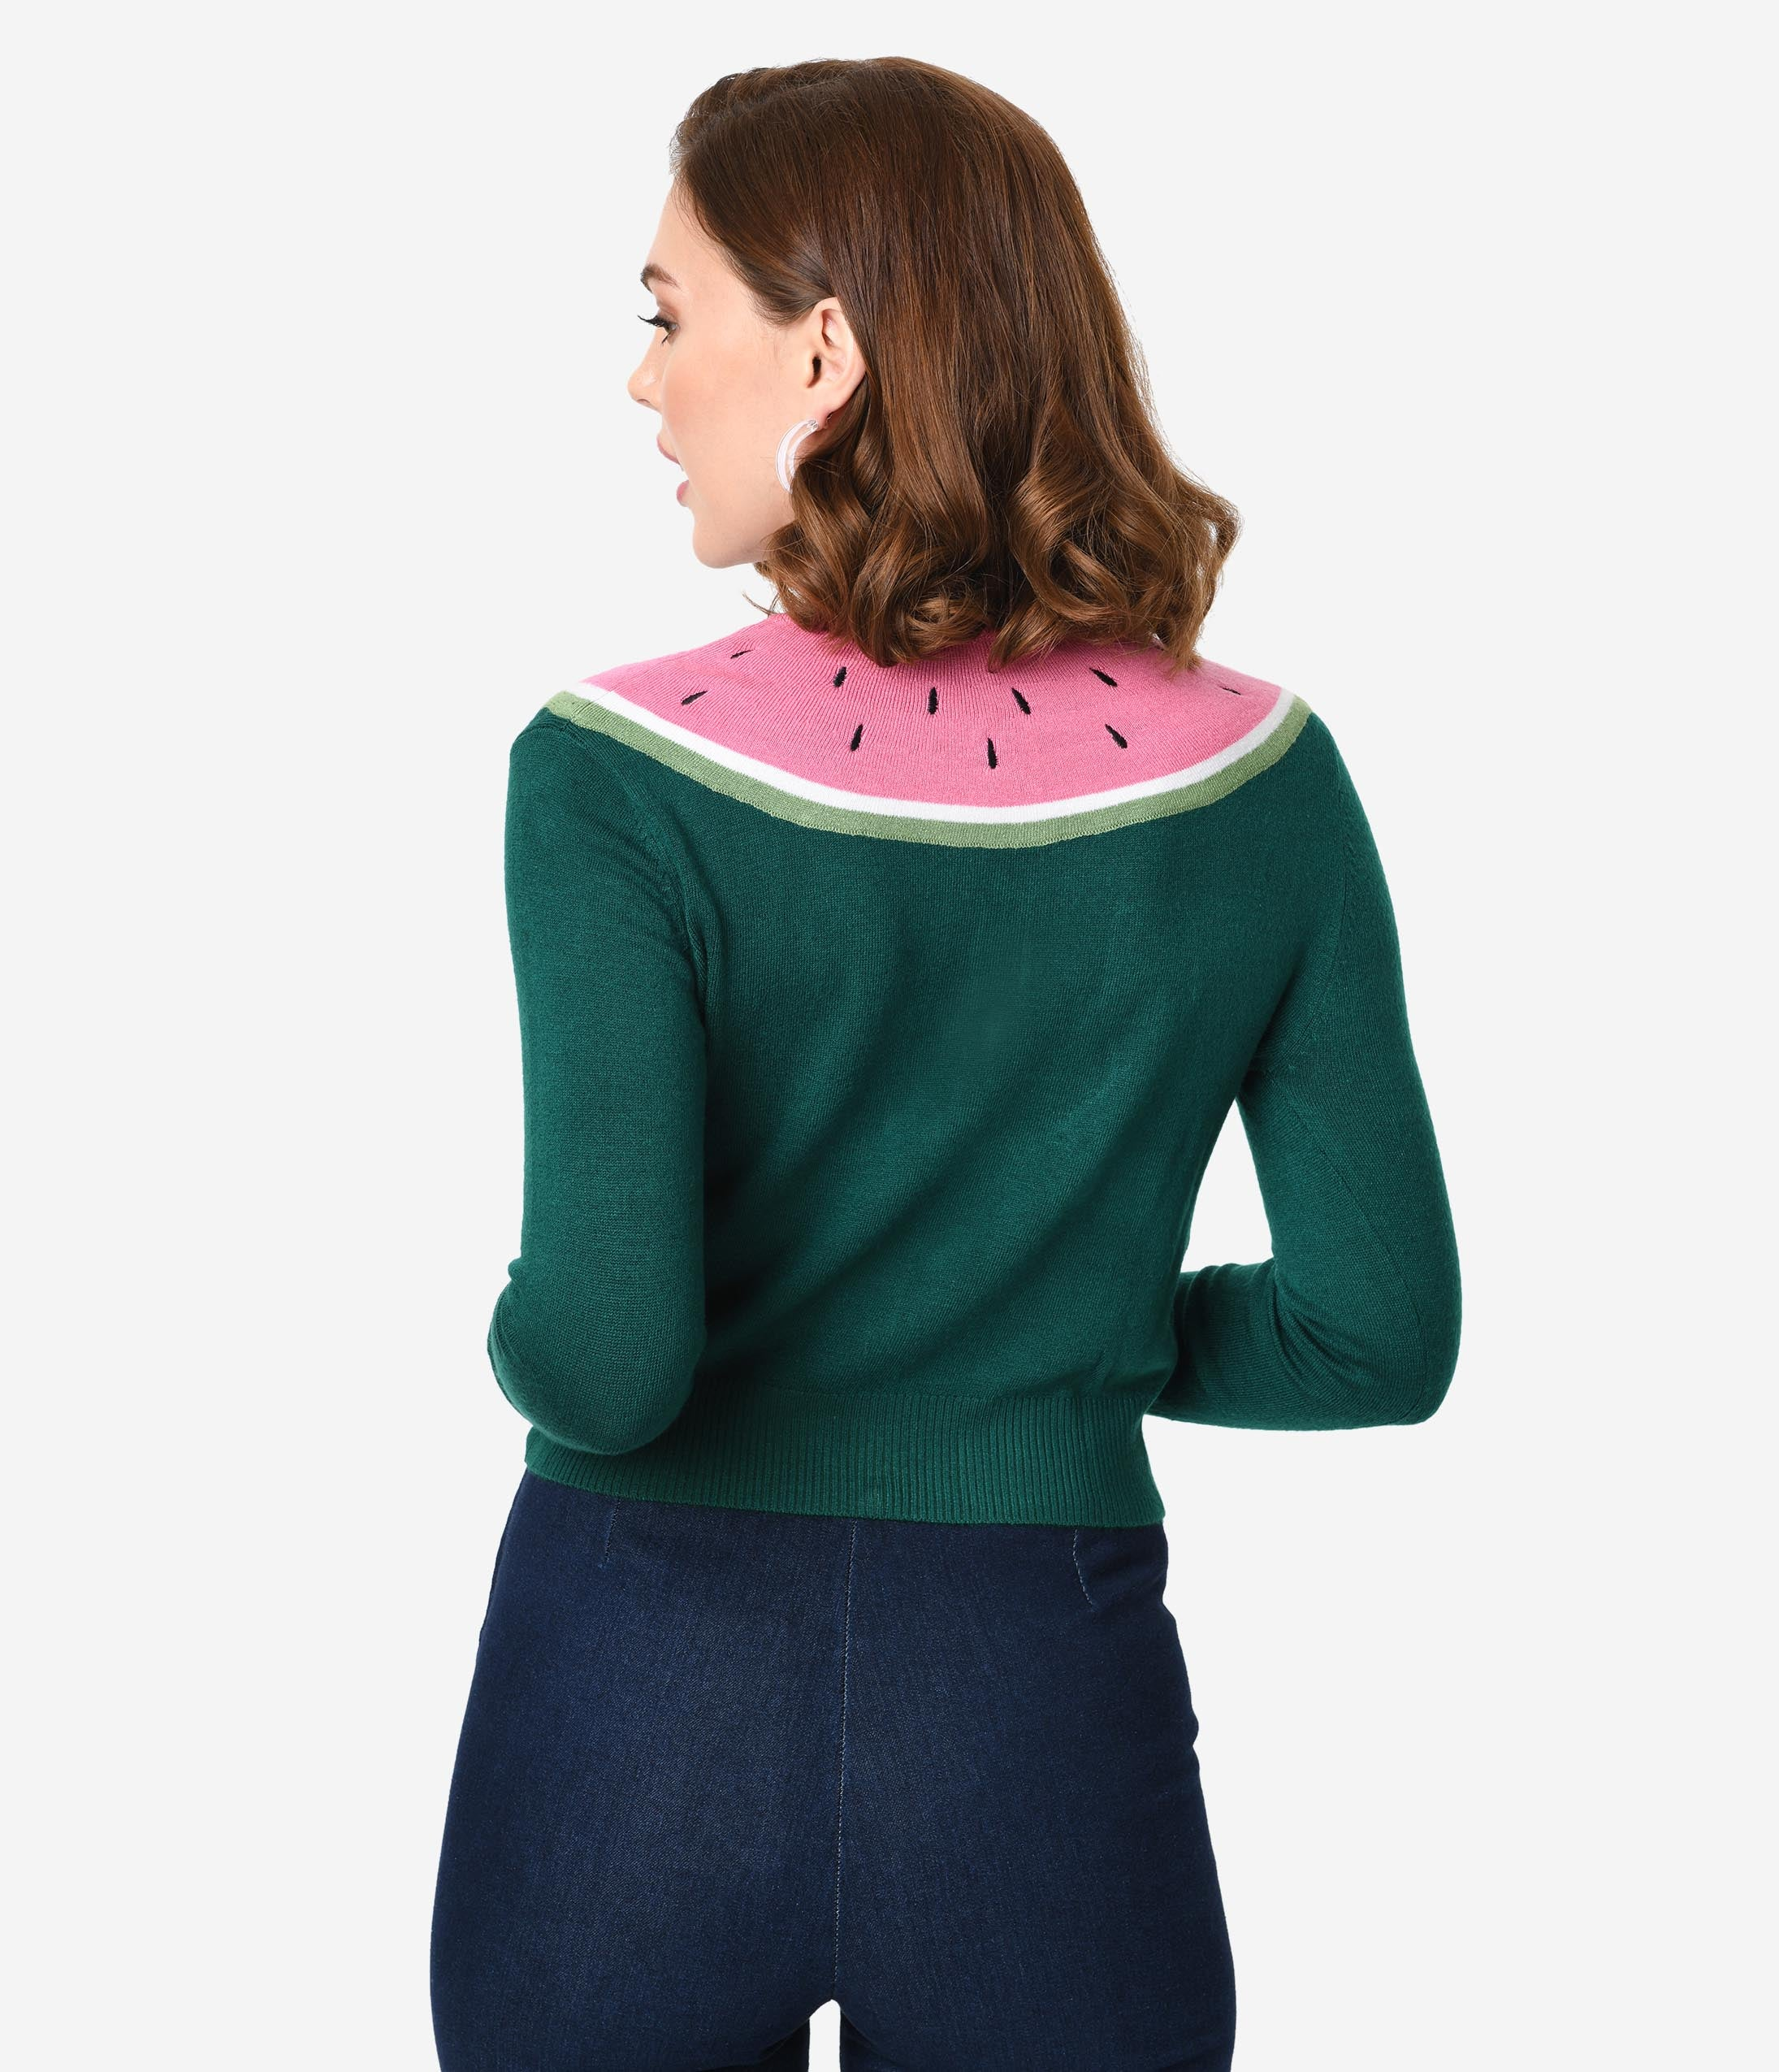 c132f012c4d Collectif Emerald Green Knit   Pink Watermelon Long Sleeved Jessie Cardigan